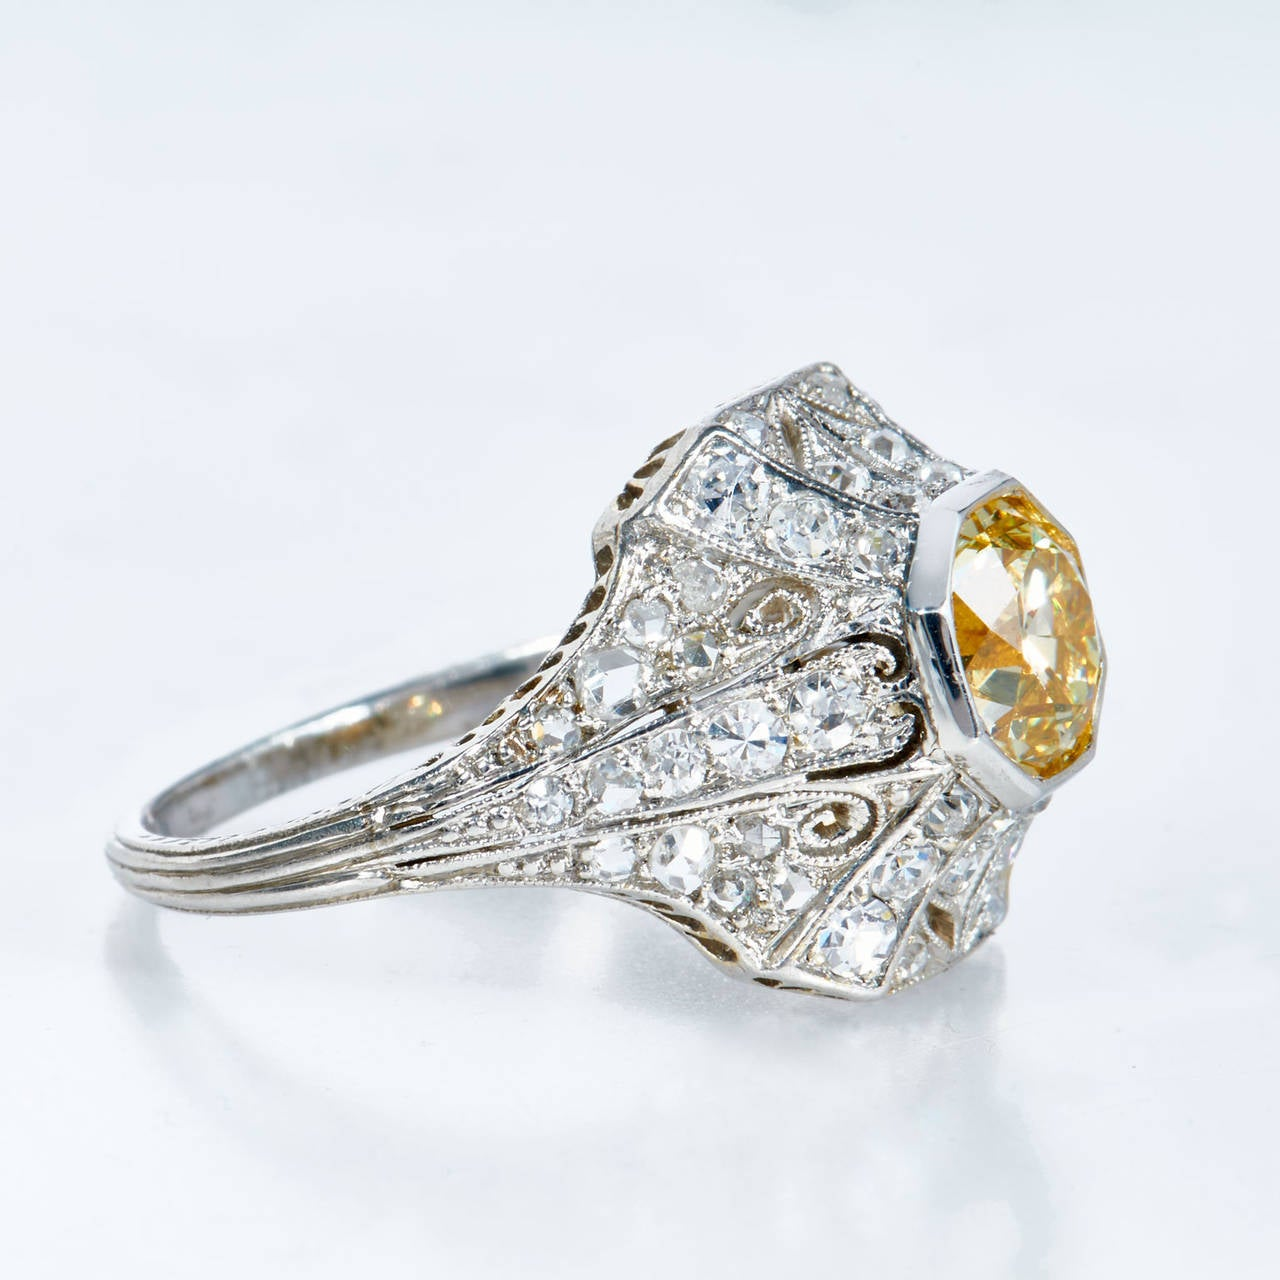 This dazzling Art Deco ring, features a sensational, natural fancy yellow old European-cut diamond weighing 1.25 carats. GIA graded, this natural diamond with VVS2 clarity shines from atop a gorgeous, original Art Deco mounting. Natural fancy yellow